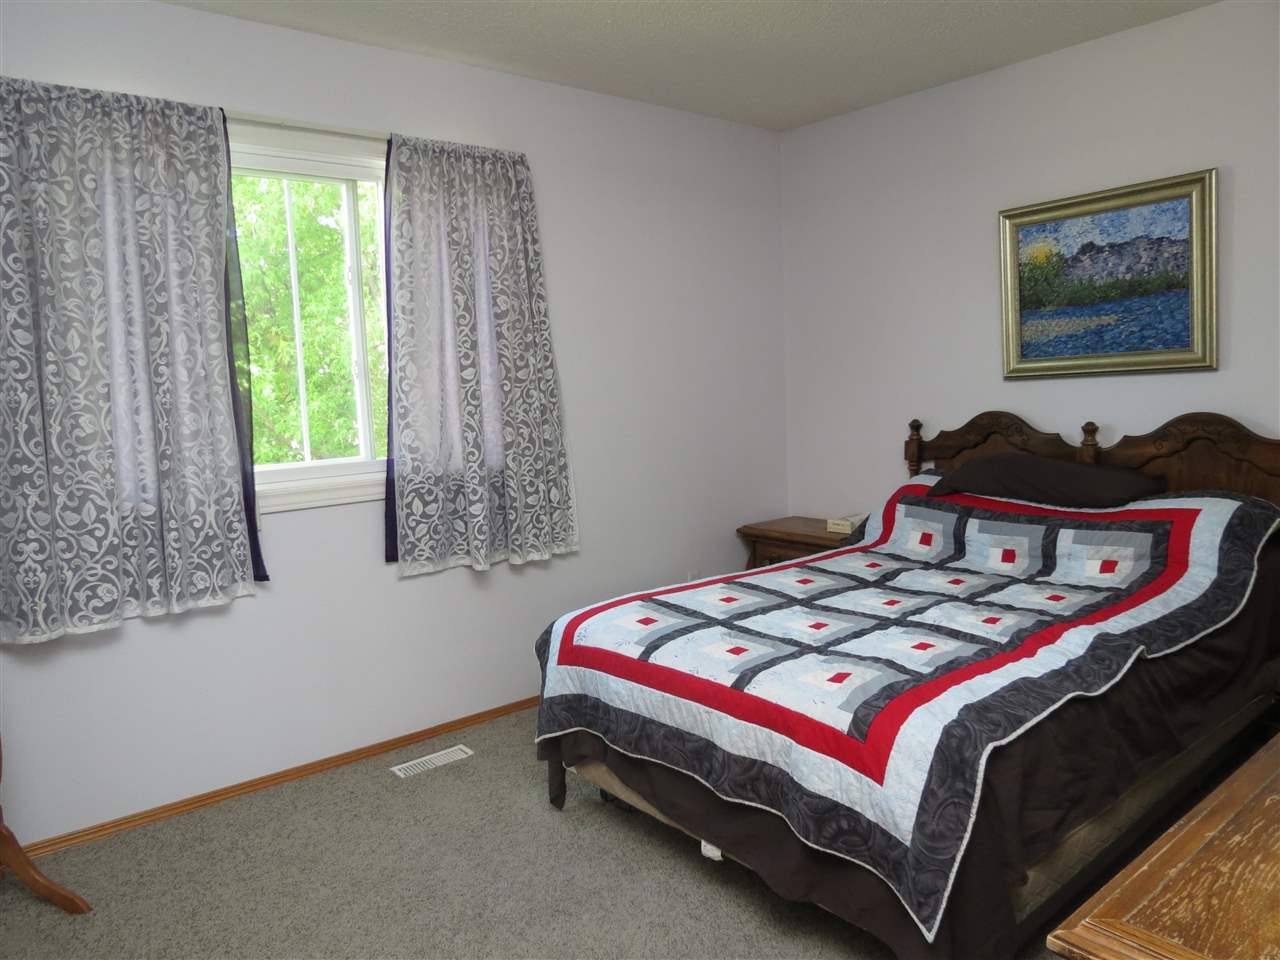 Photo 13: 9510 97 Street: Morinville House for sale : MLS® # E4067875